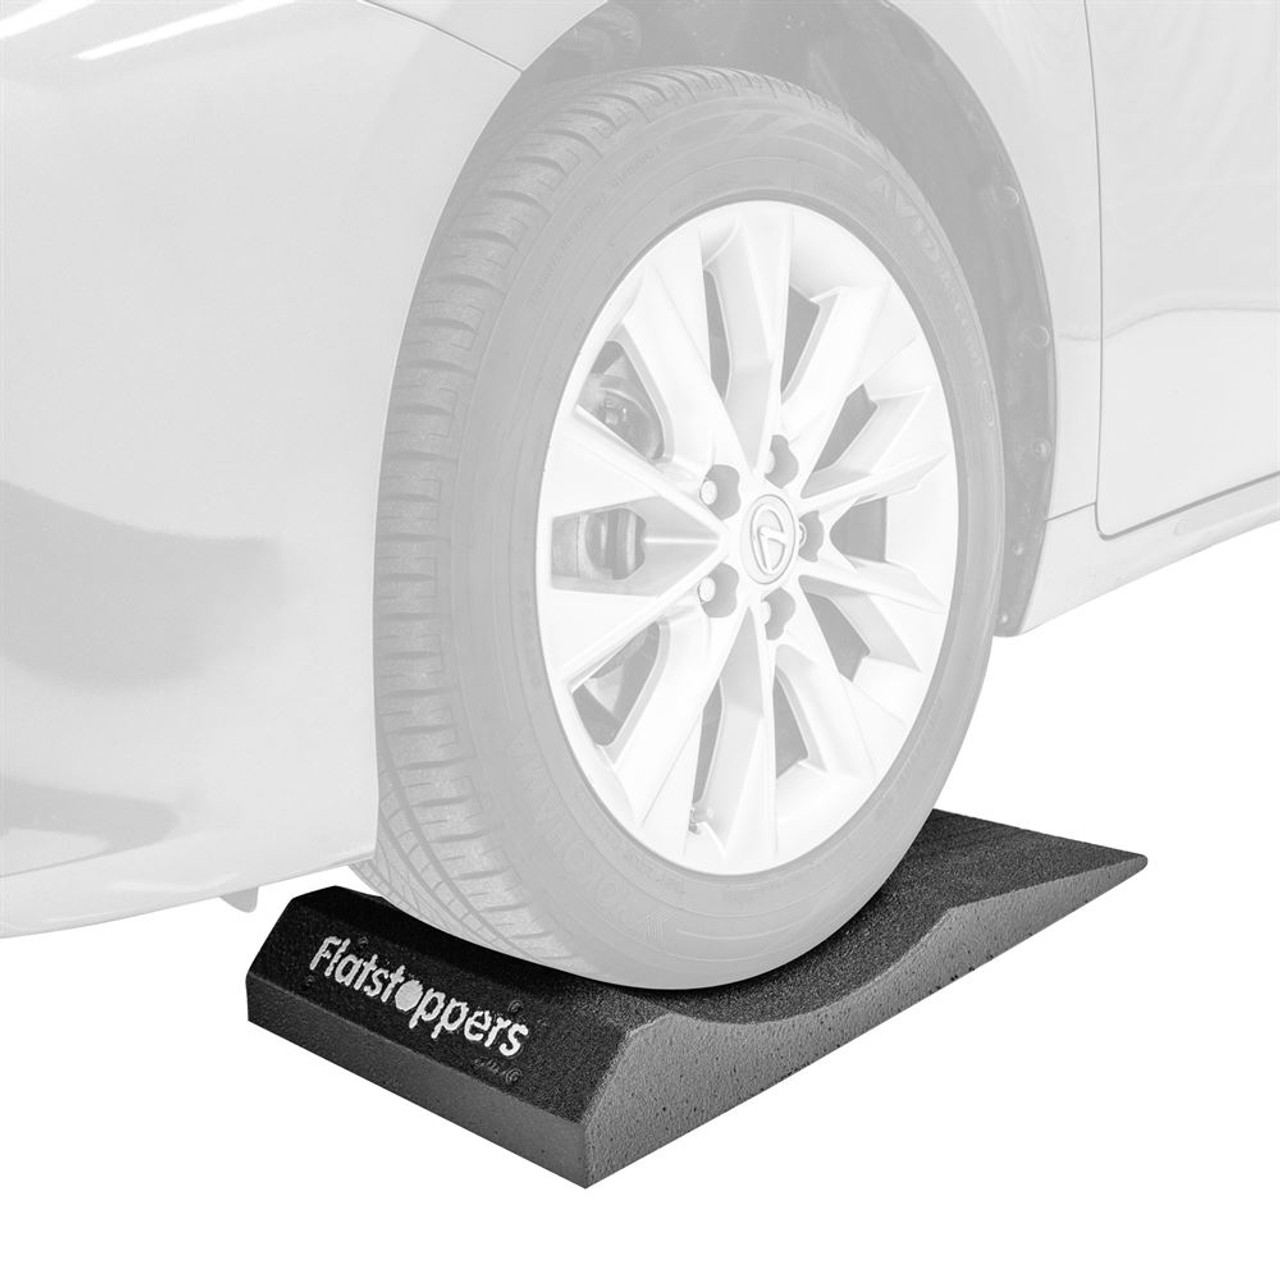 """Race Ramps 14"""" W FlatStoppers Car Storage Ramps - 4 Pack"""